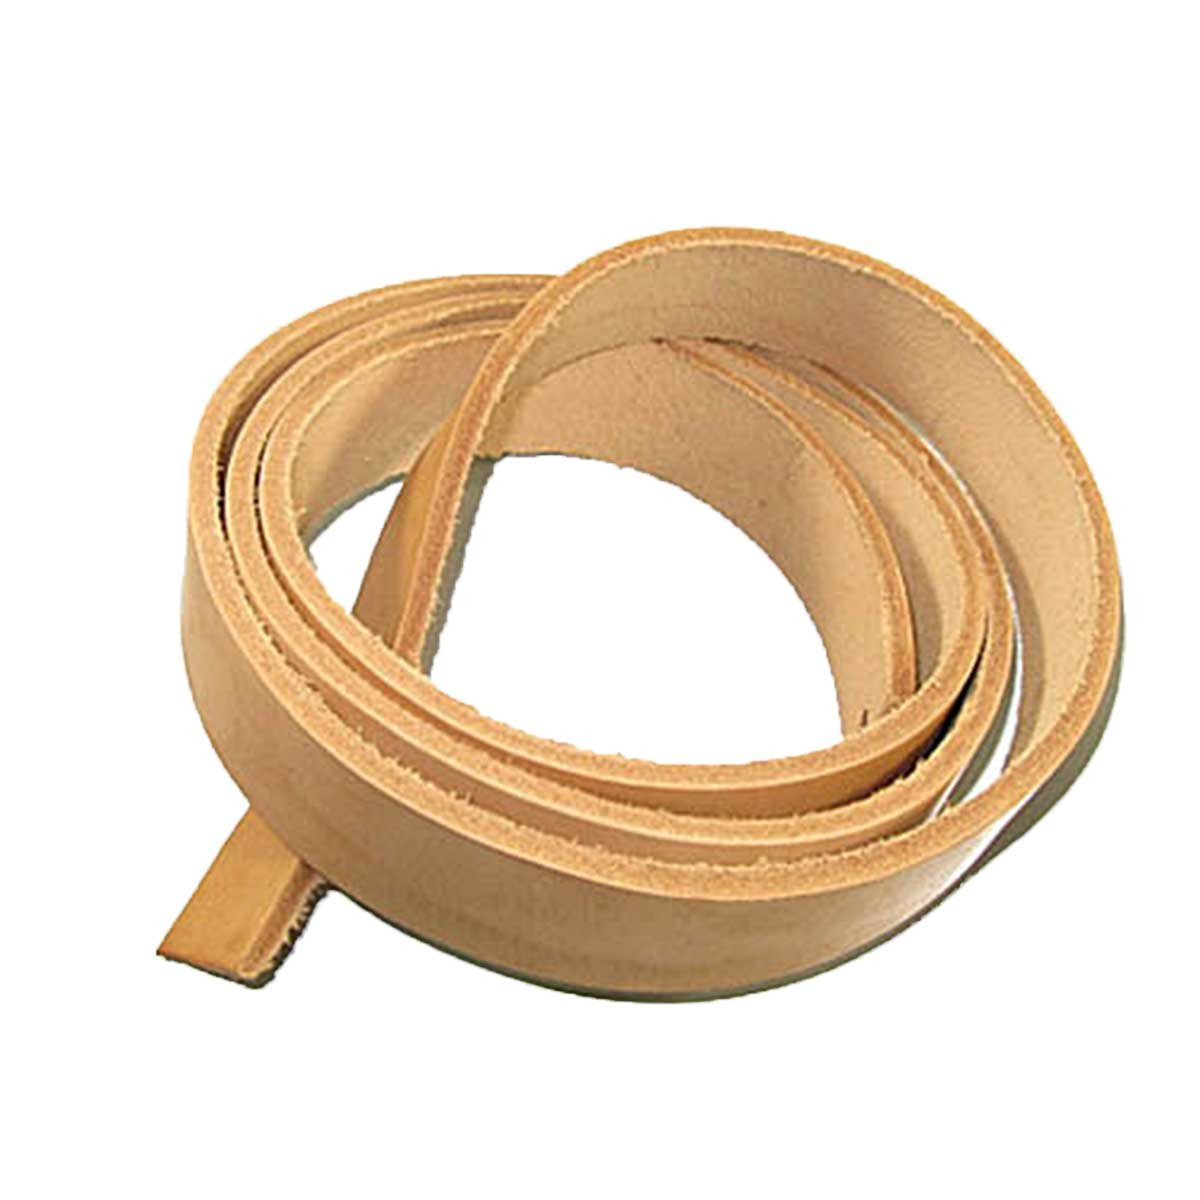 """9/10 oz Natural Vegetable Tanned Cowhide Leather Strip 72"""" - 3/4"""" (19mm)"""